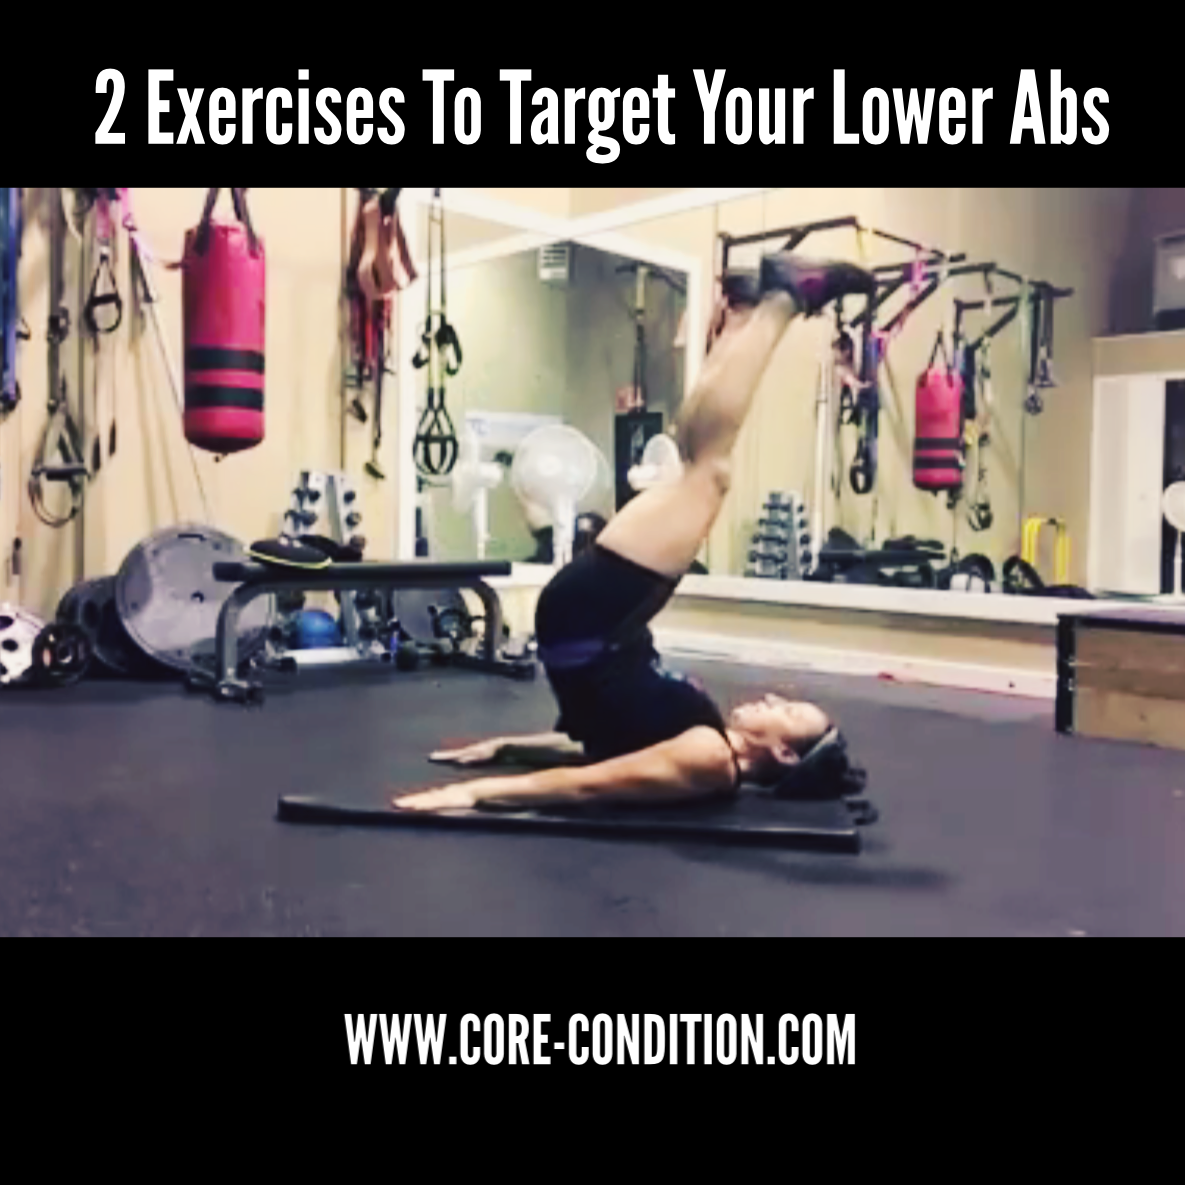 2 Exercises to Target Your Lower Abs